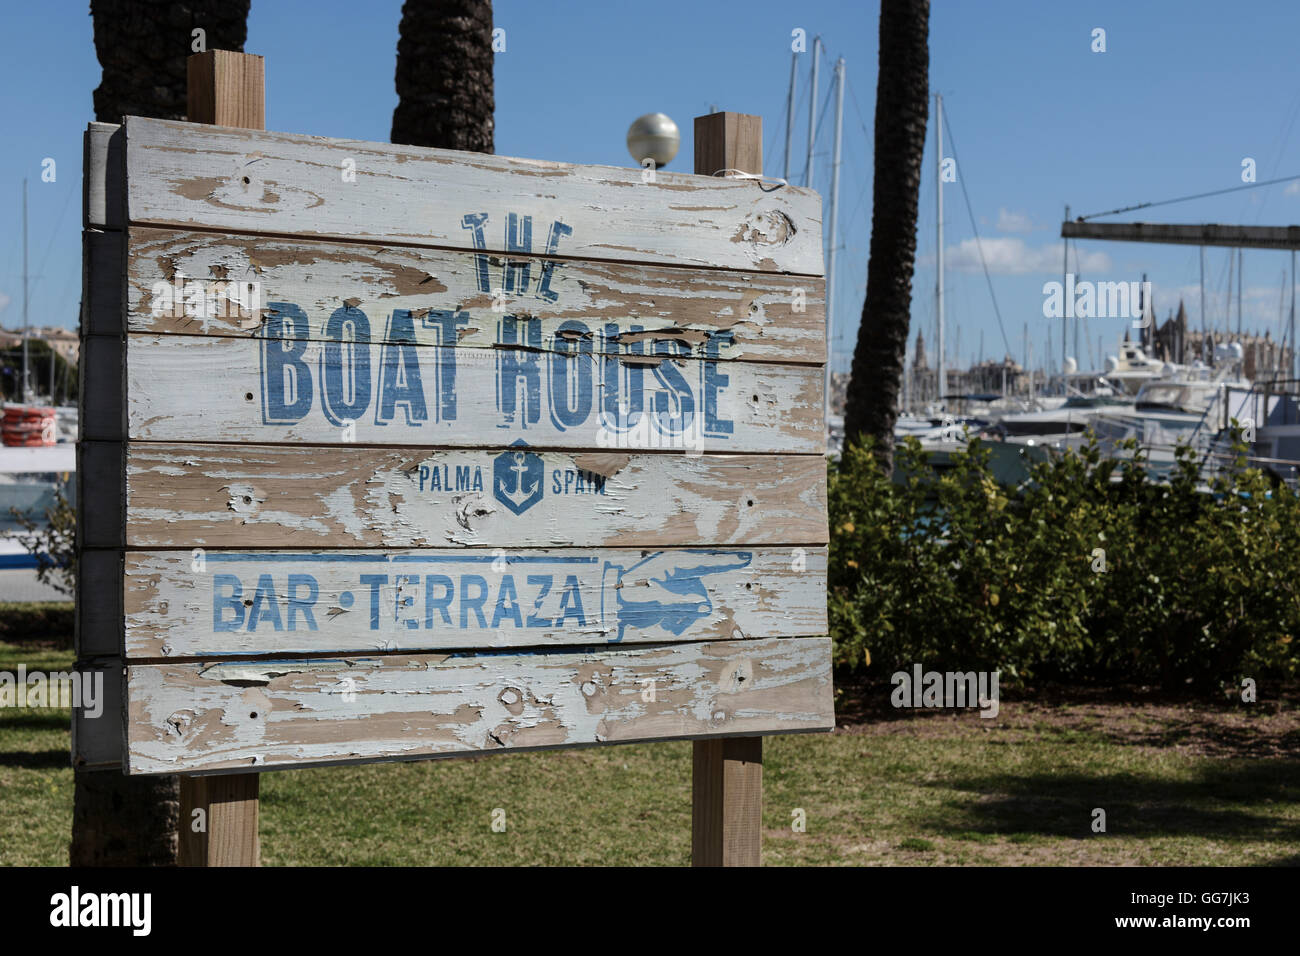 The Boat House Bar And Terraza Rustic Sign Outside